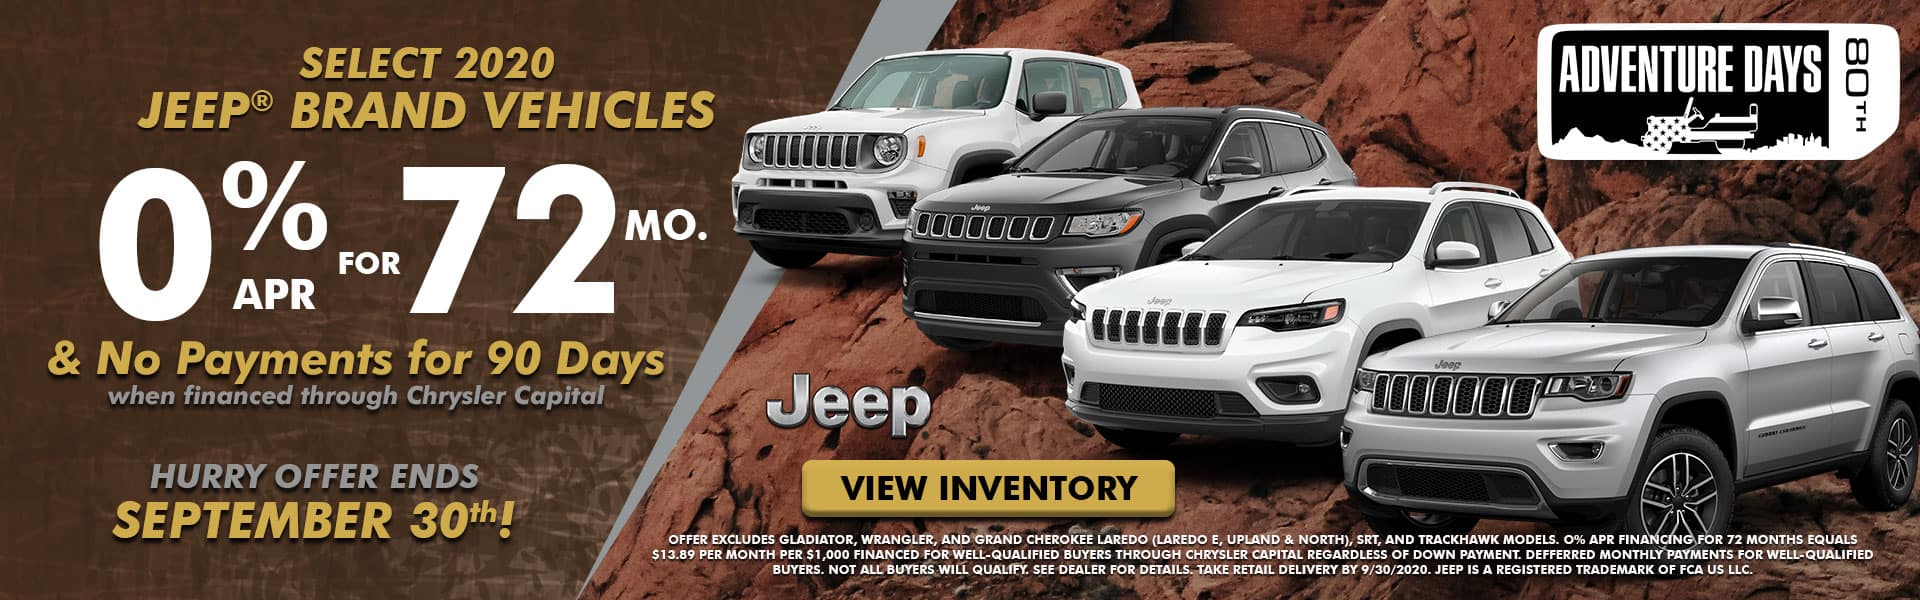 NMFOD Graphic – Web Banner (1920×600) – September National Offers – Jeep Lineup -09.2020